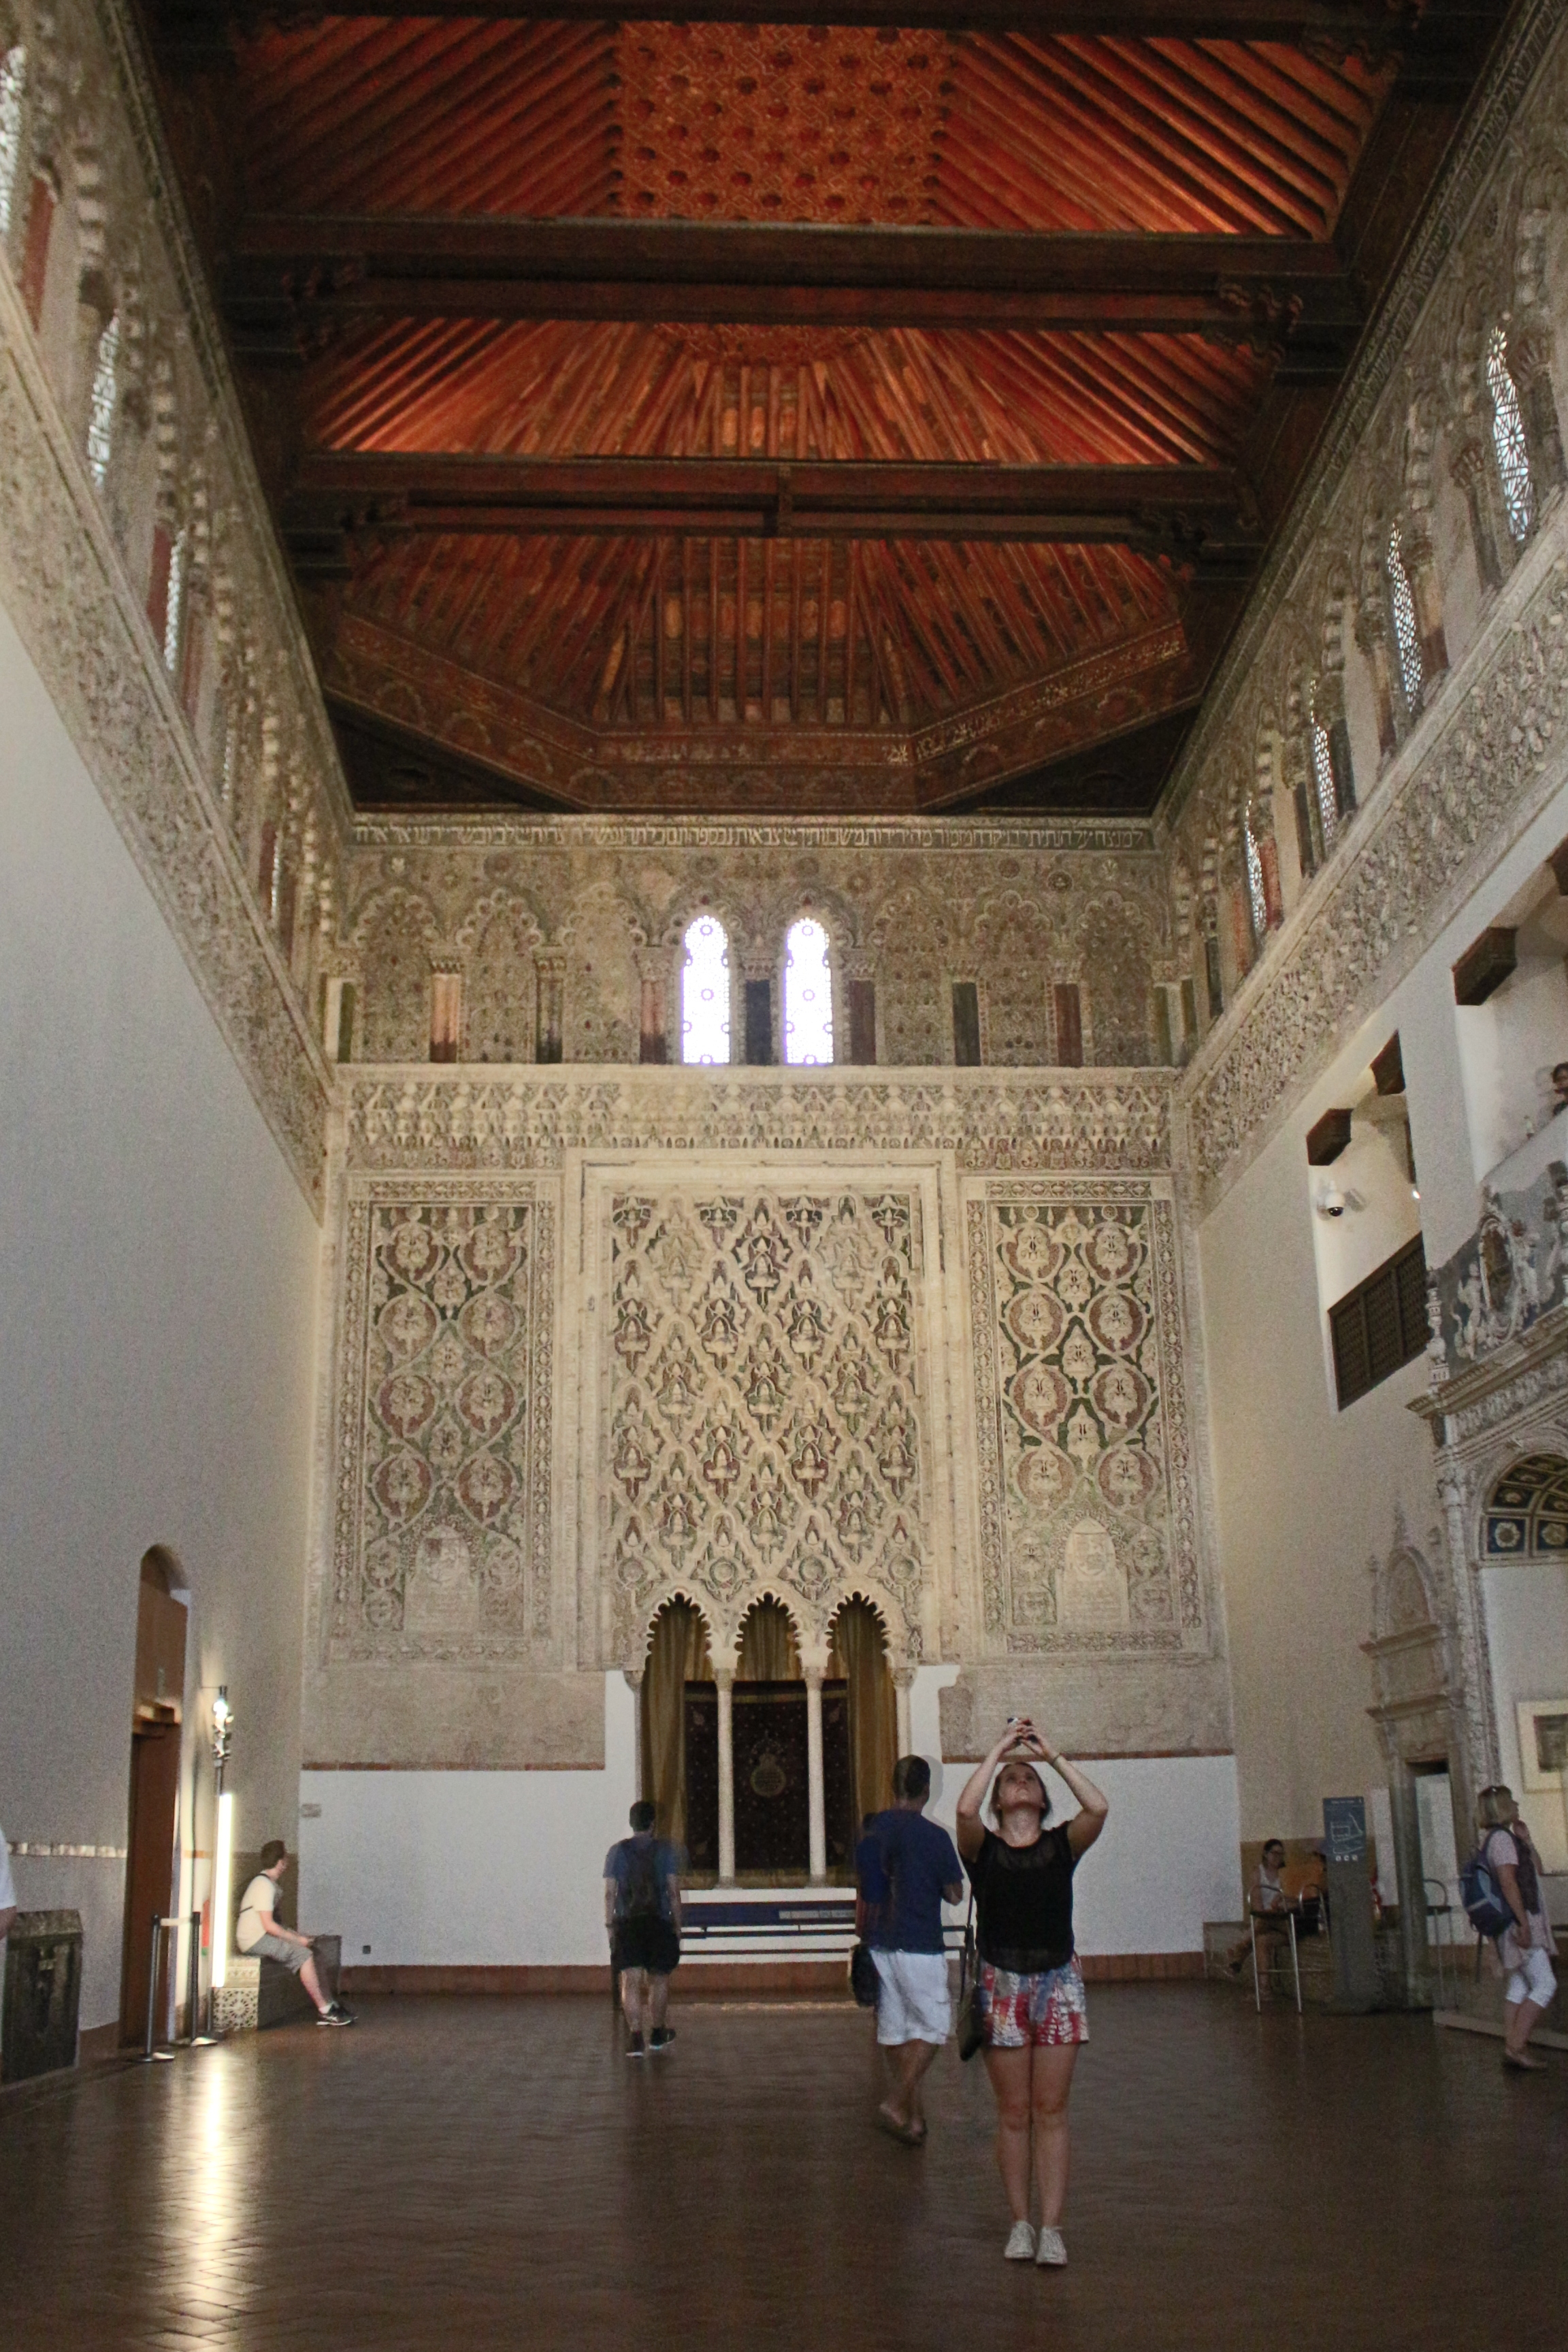 The Tránsito  Synagogue in Toledo.